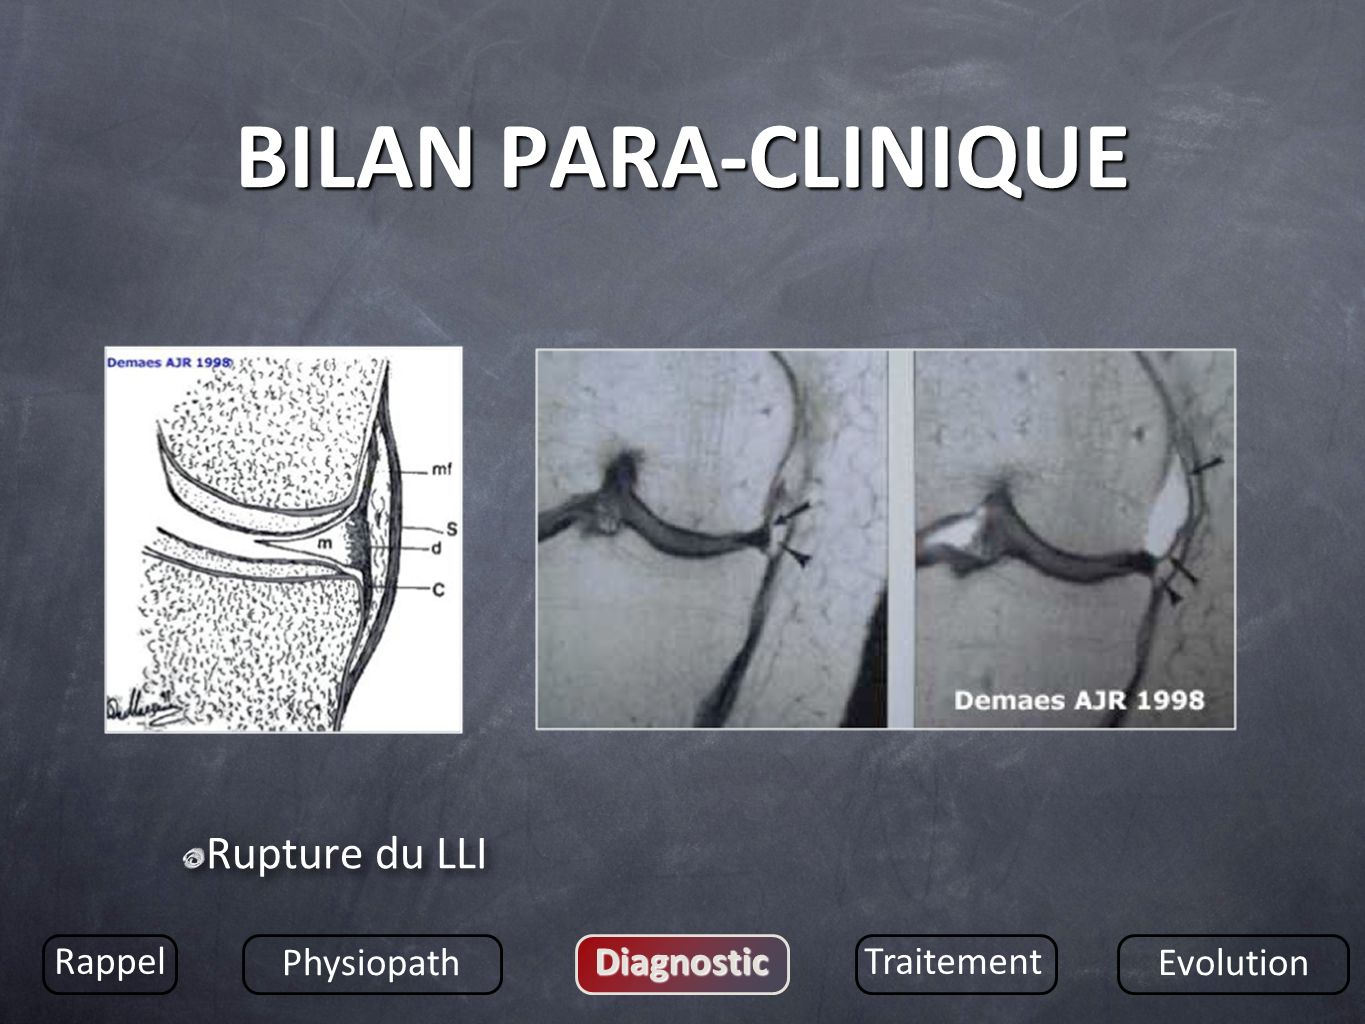 BILAN PARA-CLINIQUE Rupture du LLI Rappel Physiopath Diagnostic